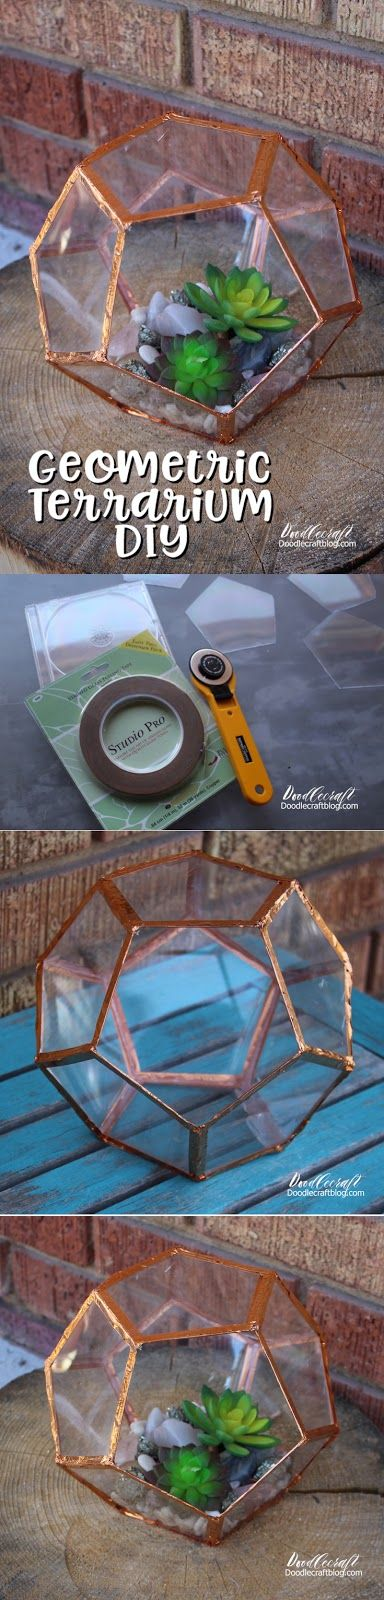 Geometric Succulent Terrarium DIY!  Made from CD Cases!!!  Great Upcycle!